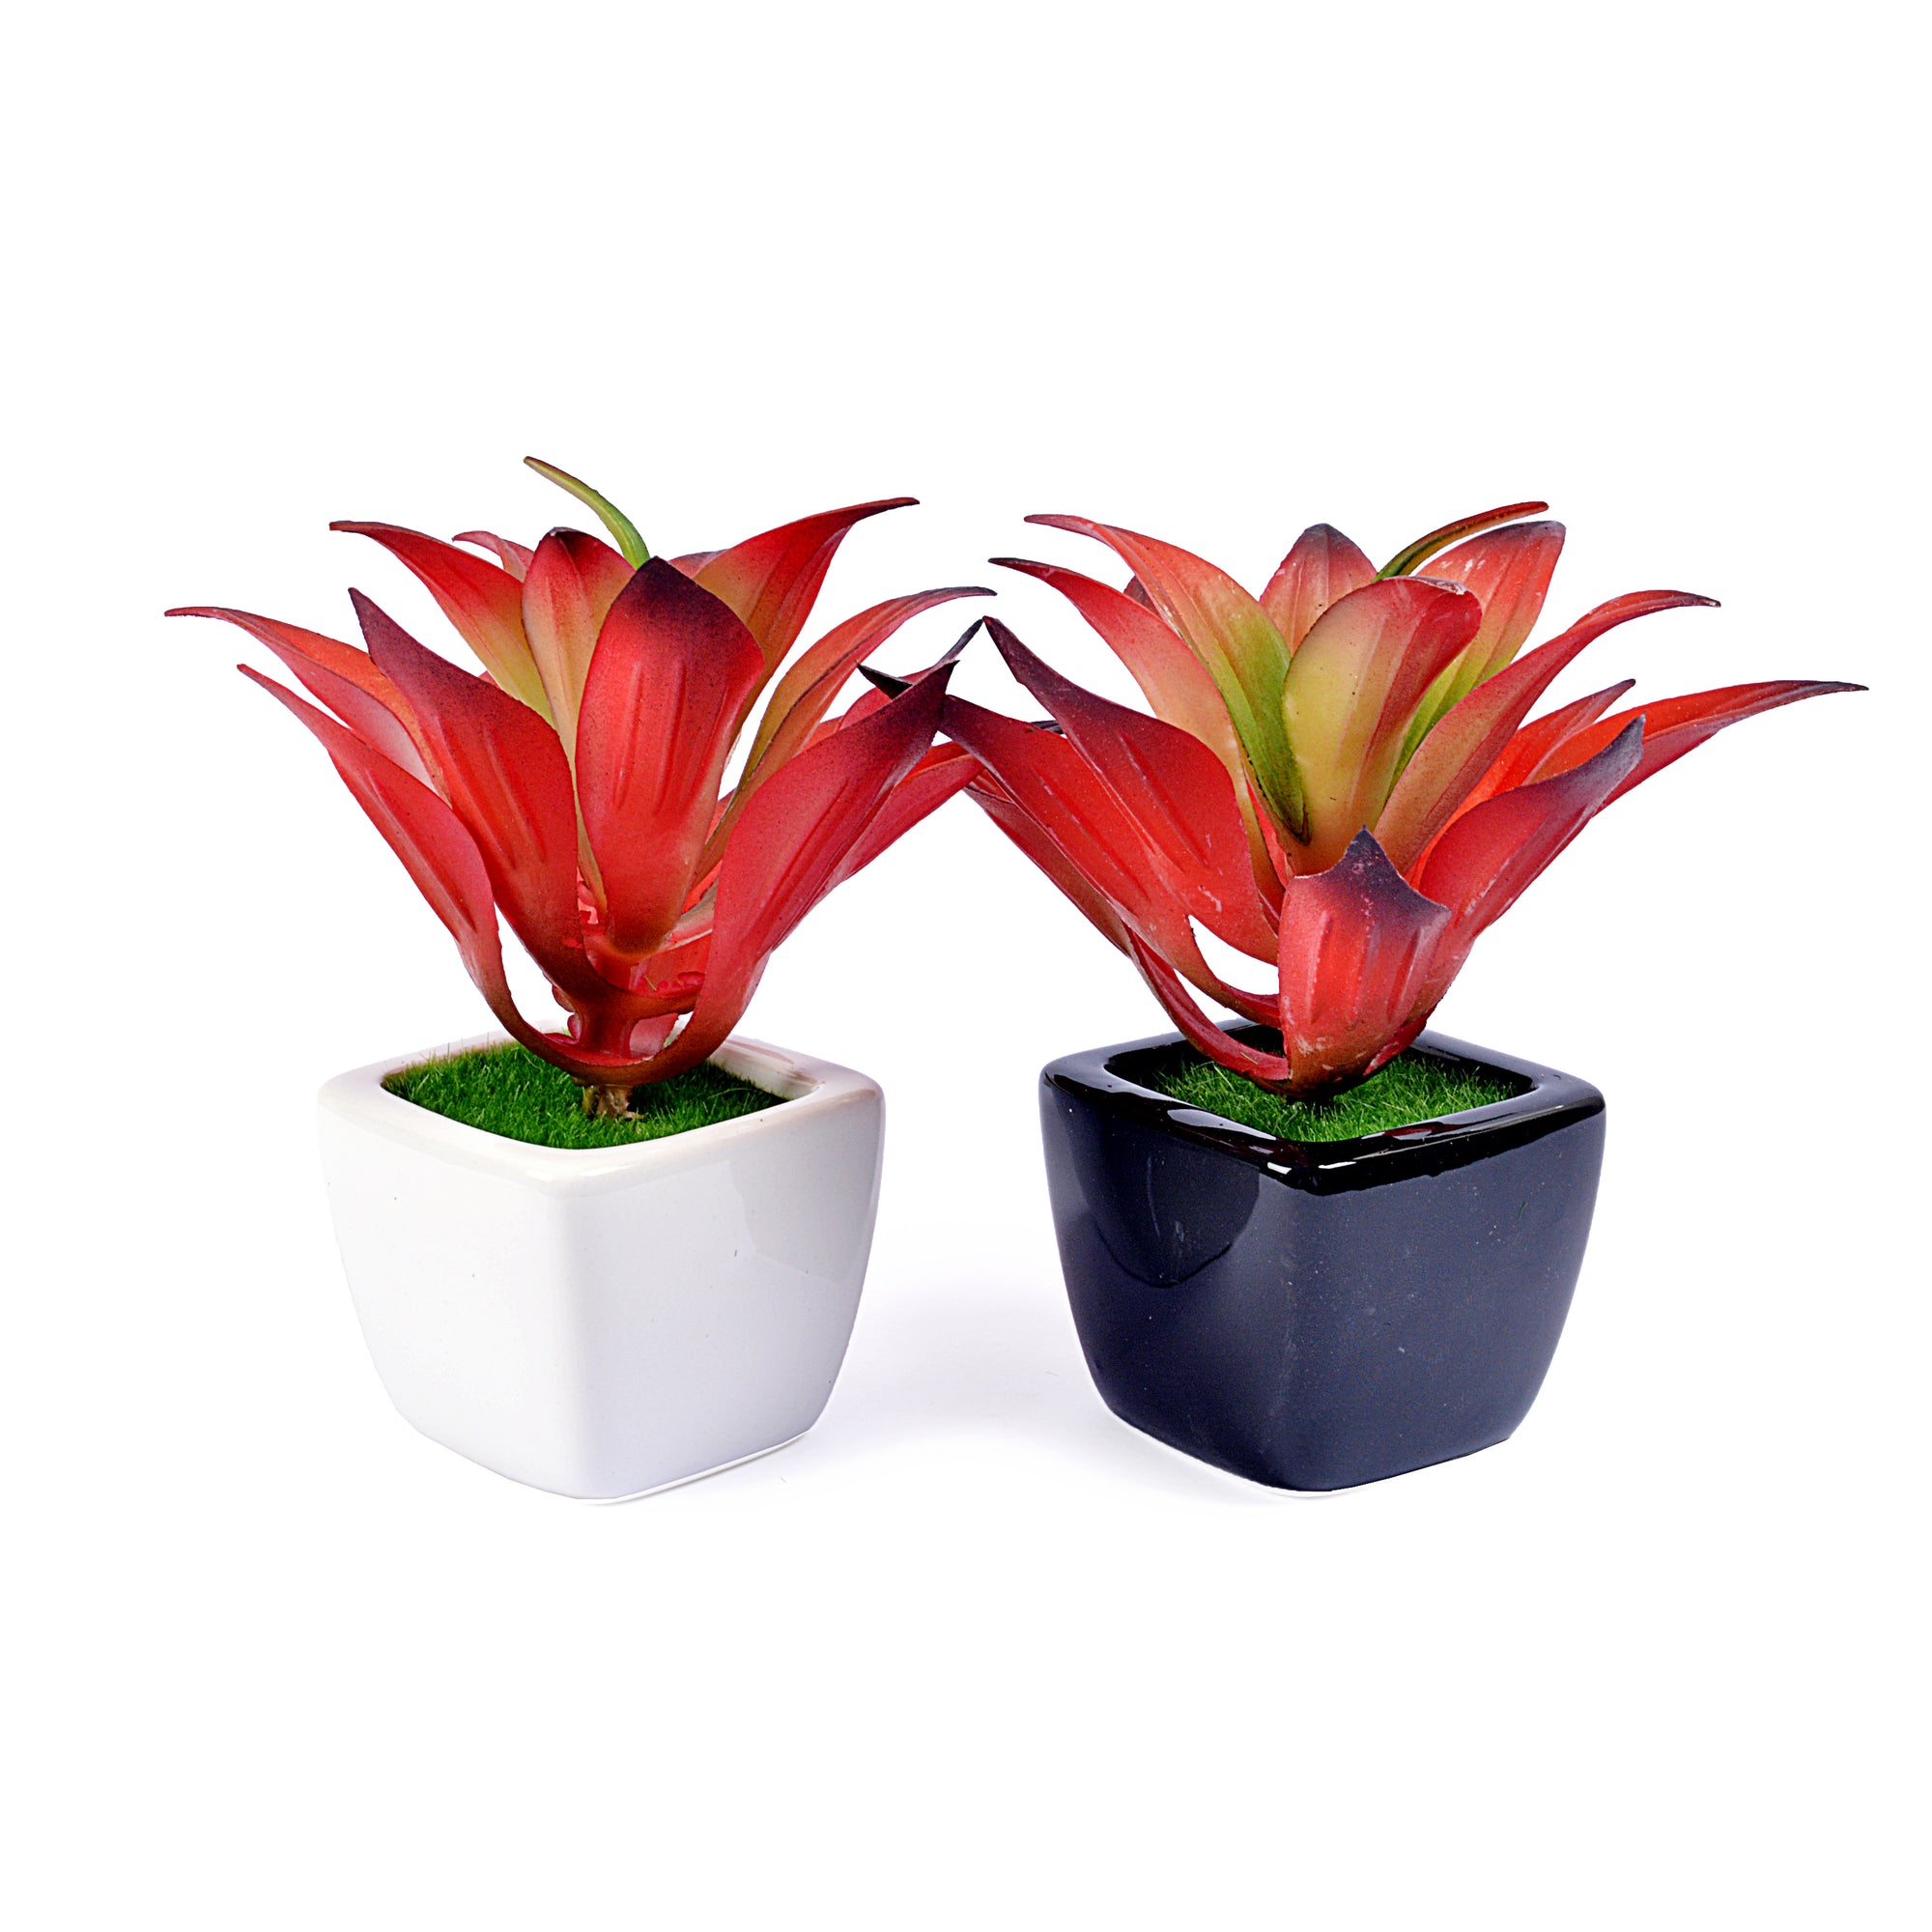 Small Ceramic Decorative Planter (set of 2)